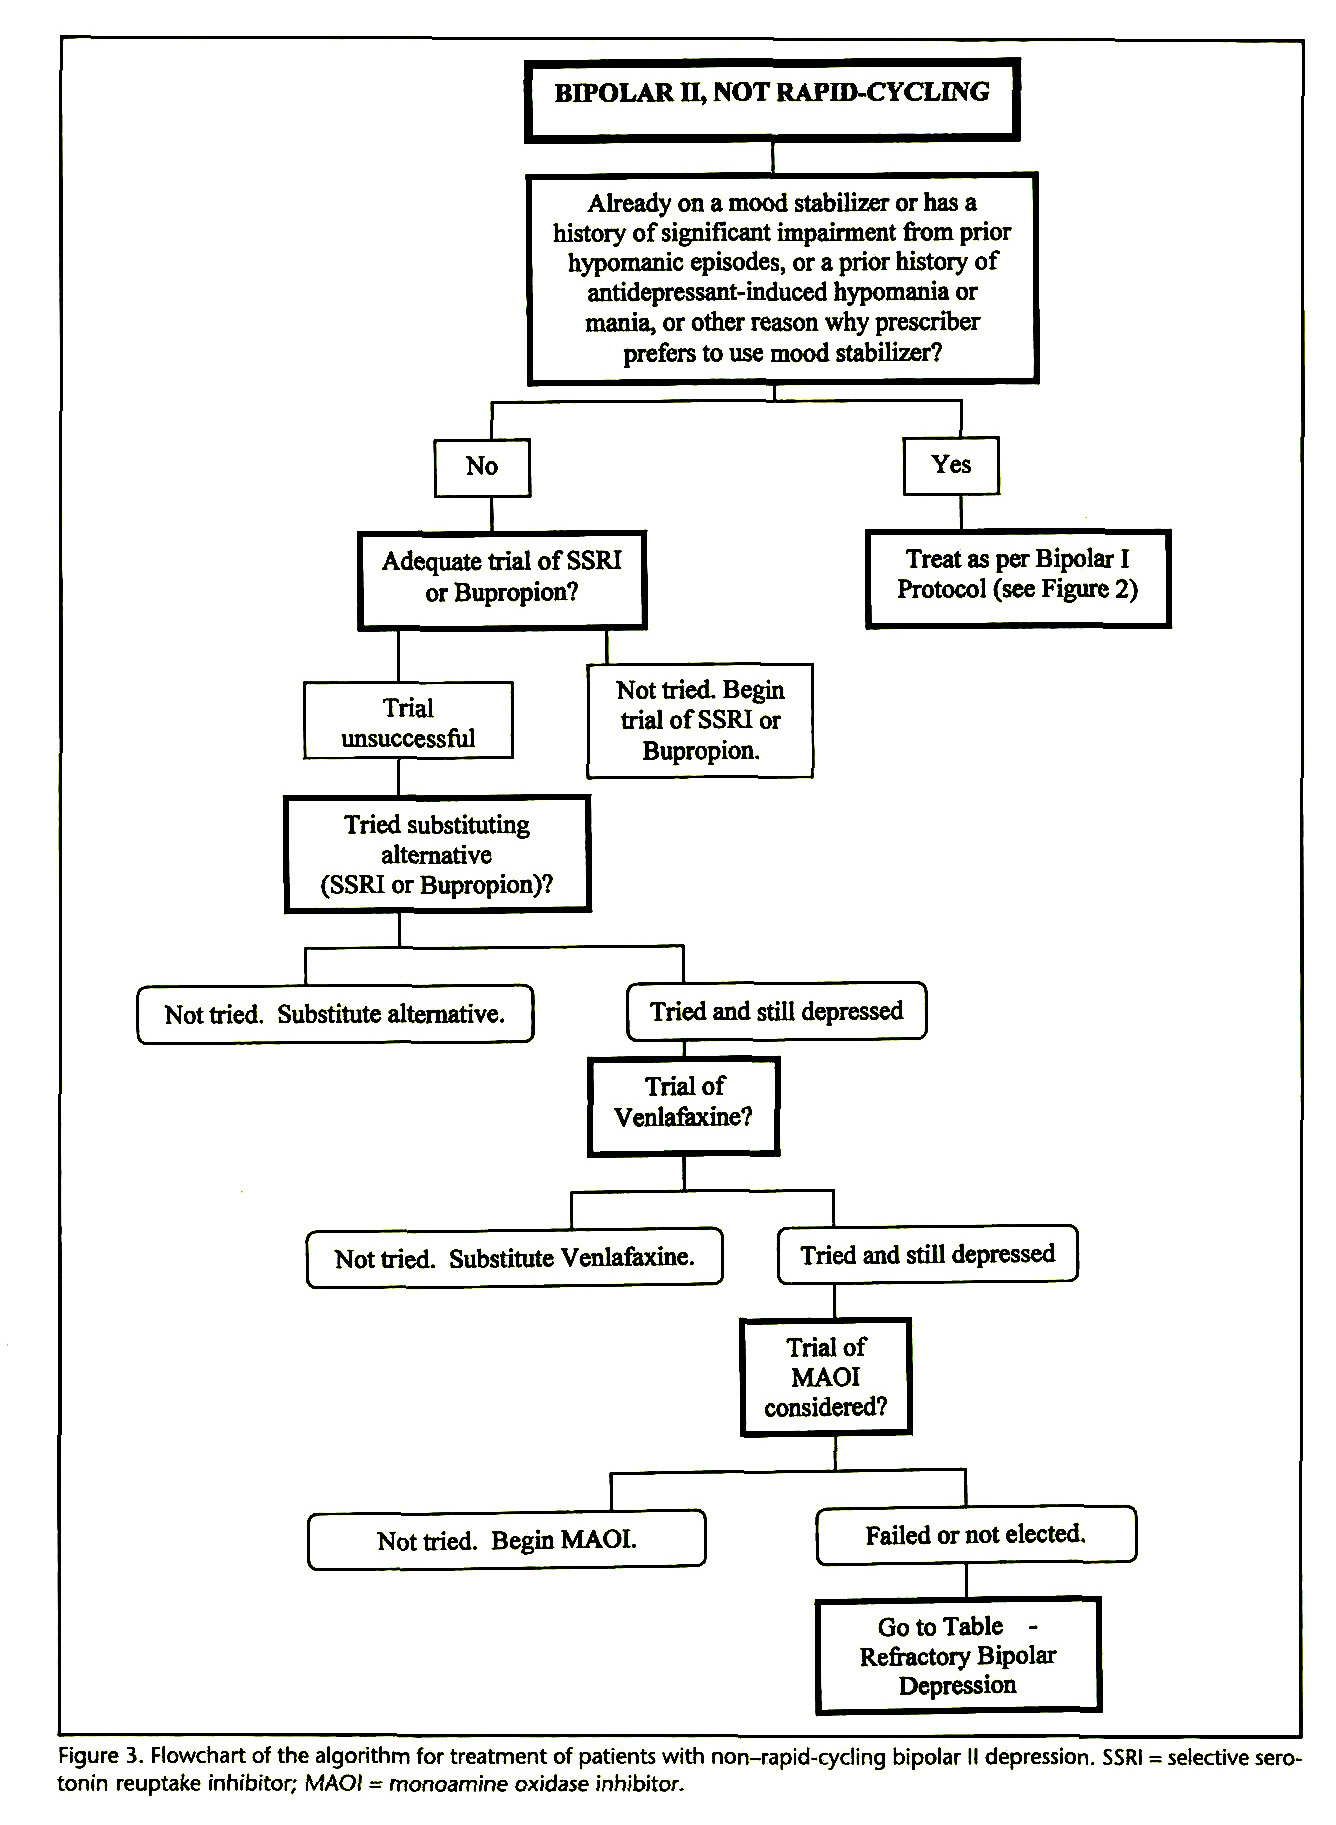 Figure 3. Flowchart of the algorithm for treatment of patients with non-rapid-cycling bipolar Il depression. SSRI = selective serotonin reuptake inhibitor; MAOI = monoamine oxidase inhibitor.